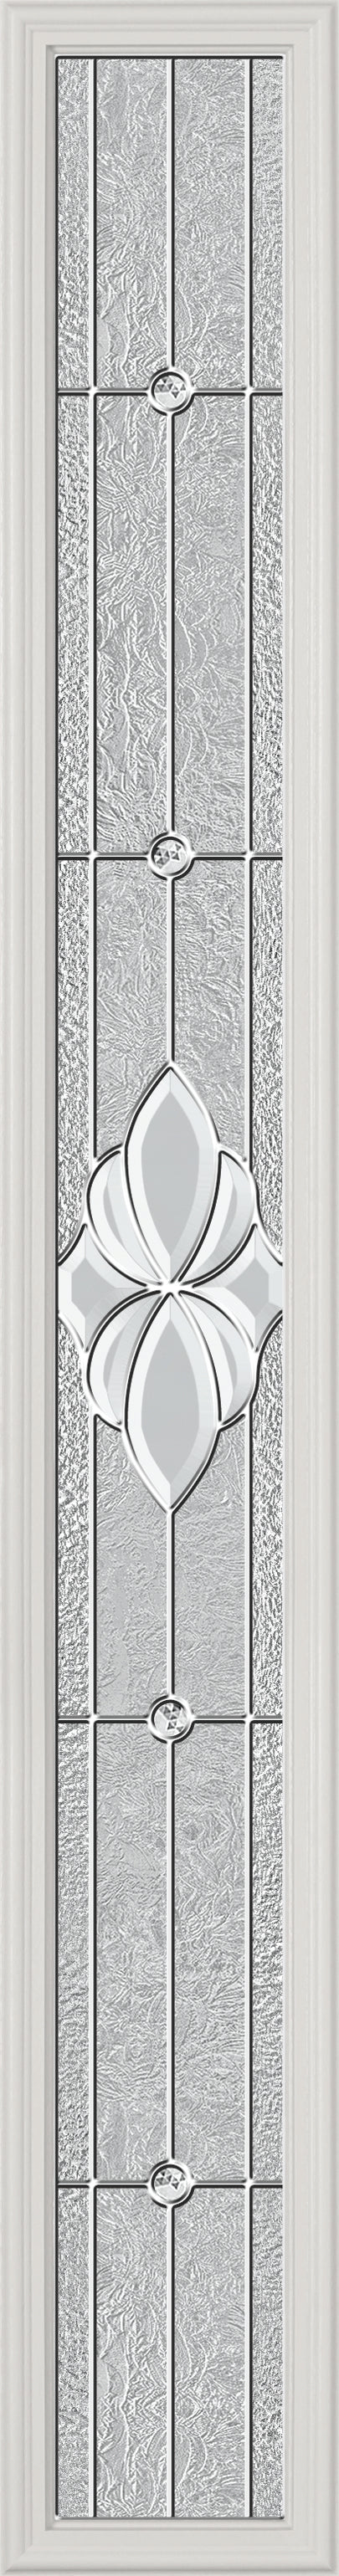 "Grosvenor Glass and Frame Kit (Full Sidelite 7"" x 64"" Glass Size)"